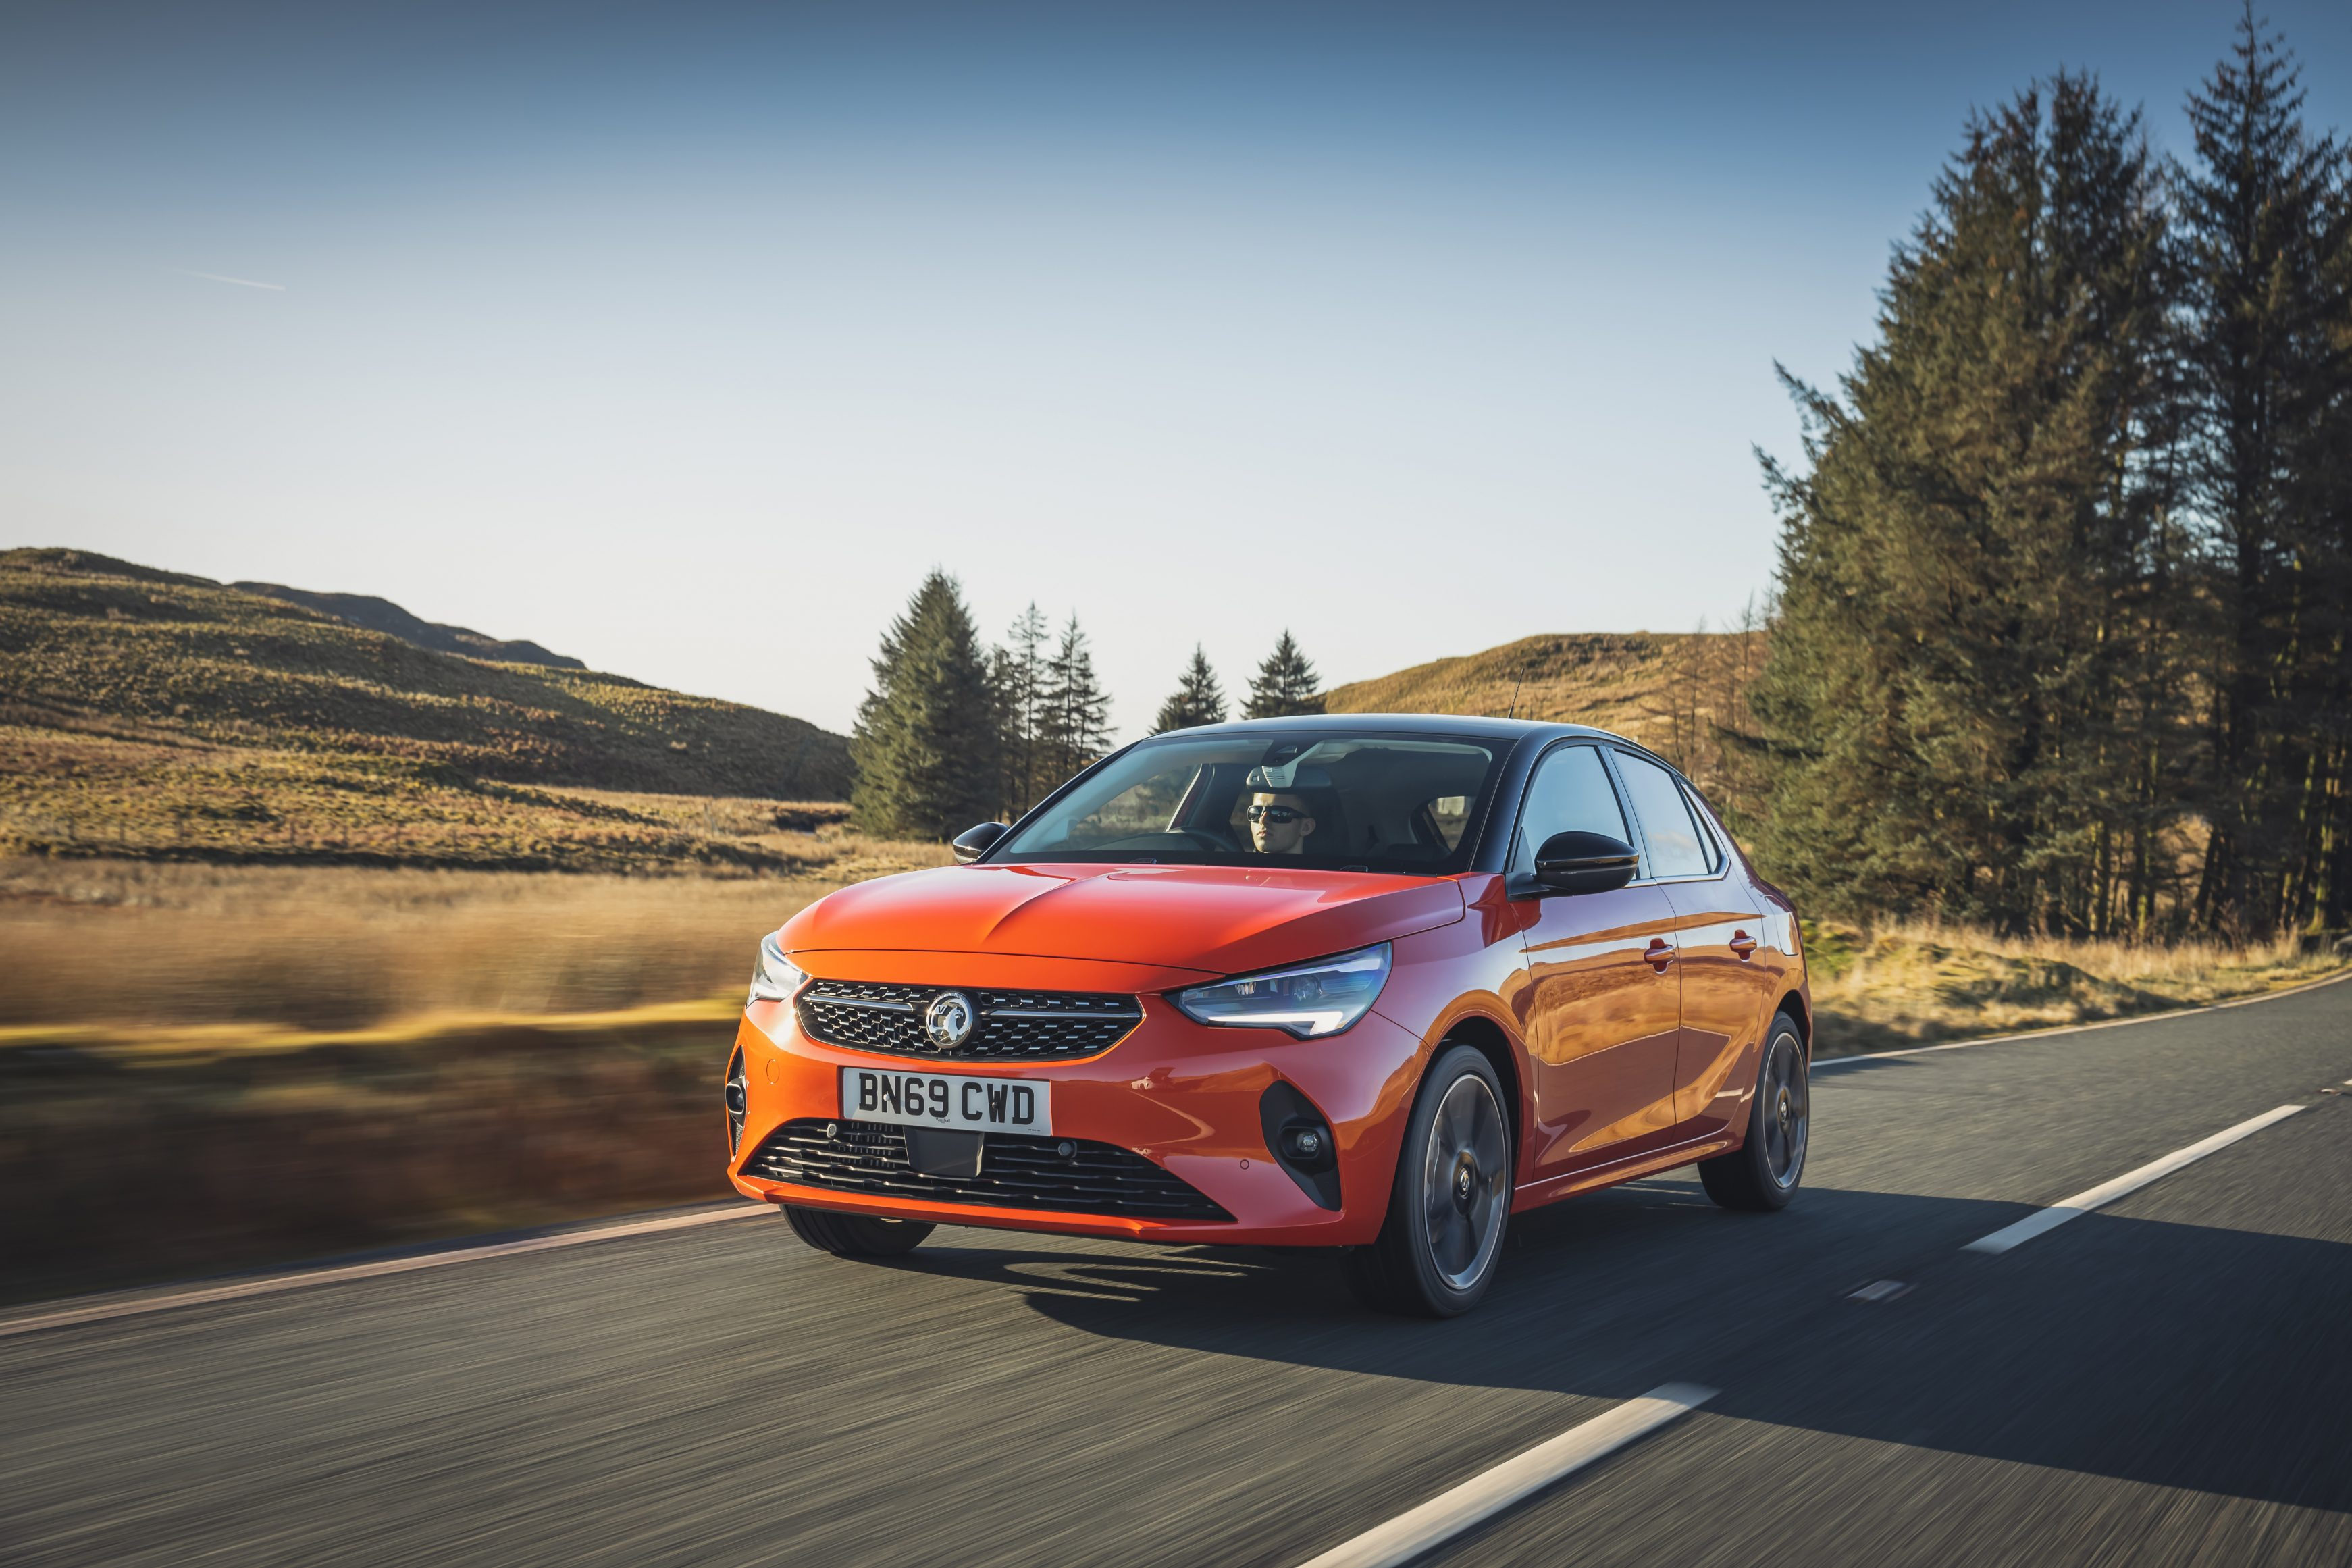 The 2021 Vauxhall Corsa has a smooth, zippy driving experience thanks to a gentle suspension and punchy engines